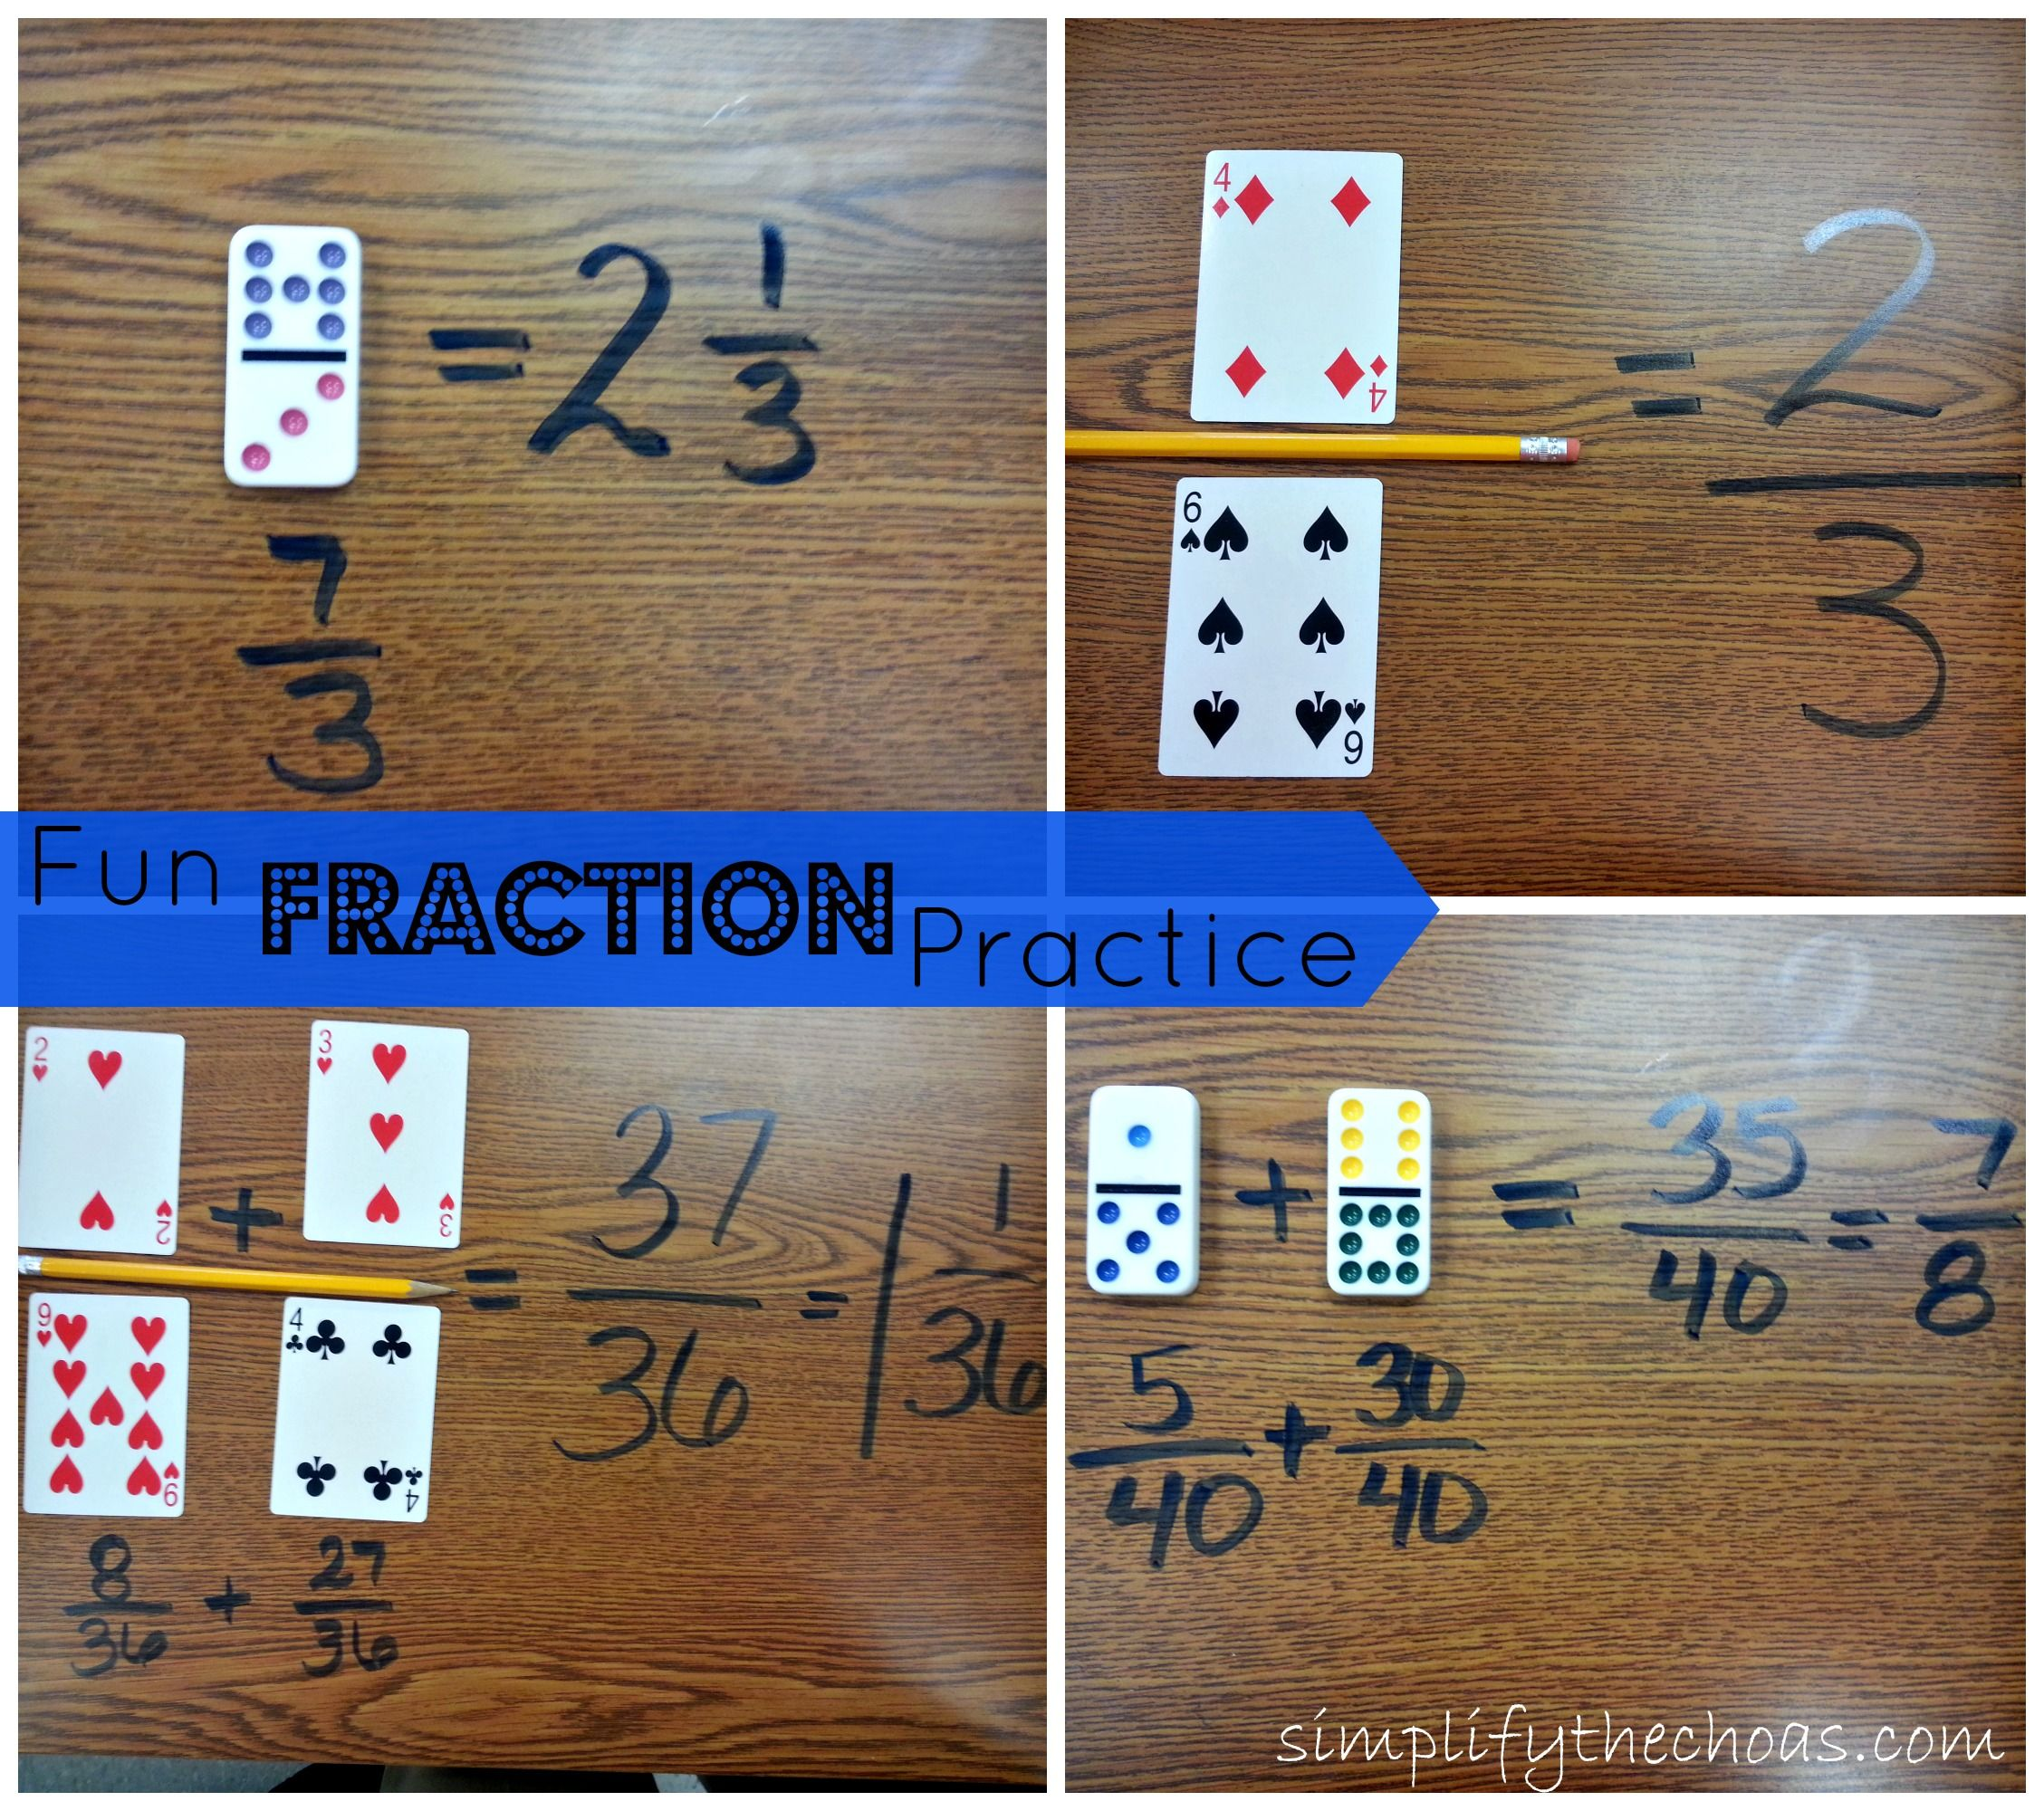 Fun ways to use cards and dominoes for fraction practice